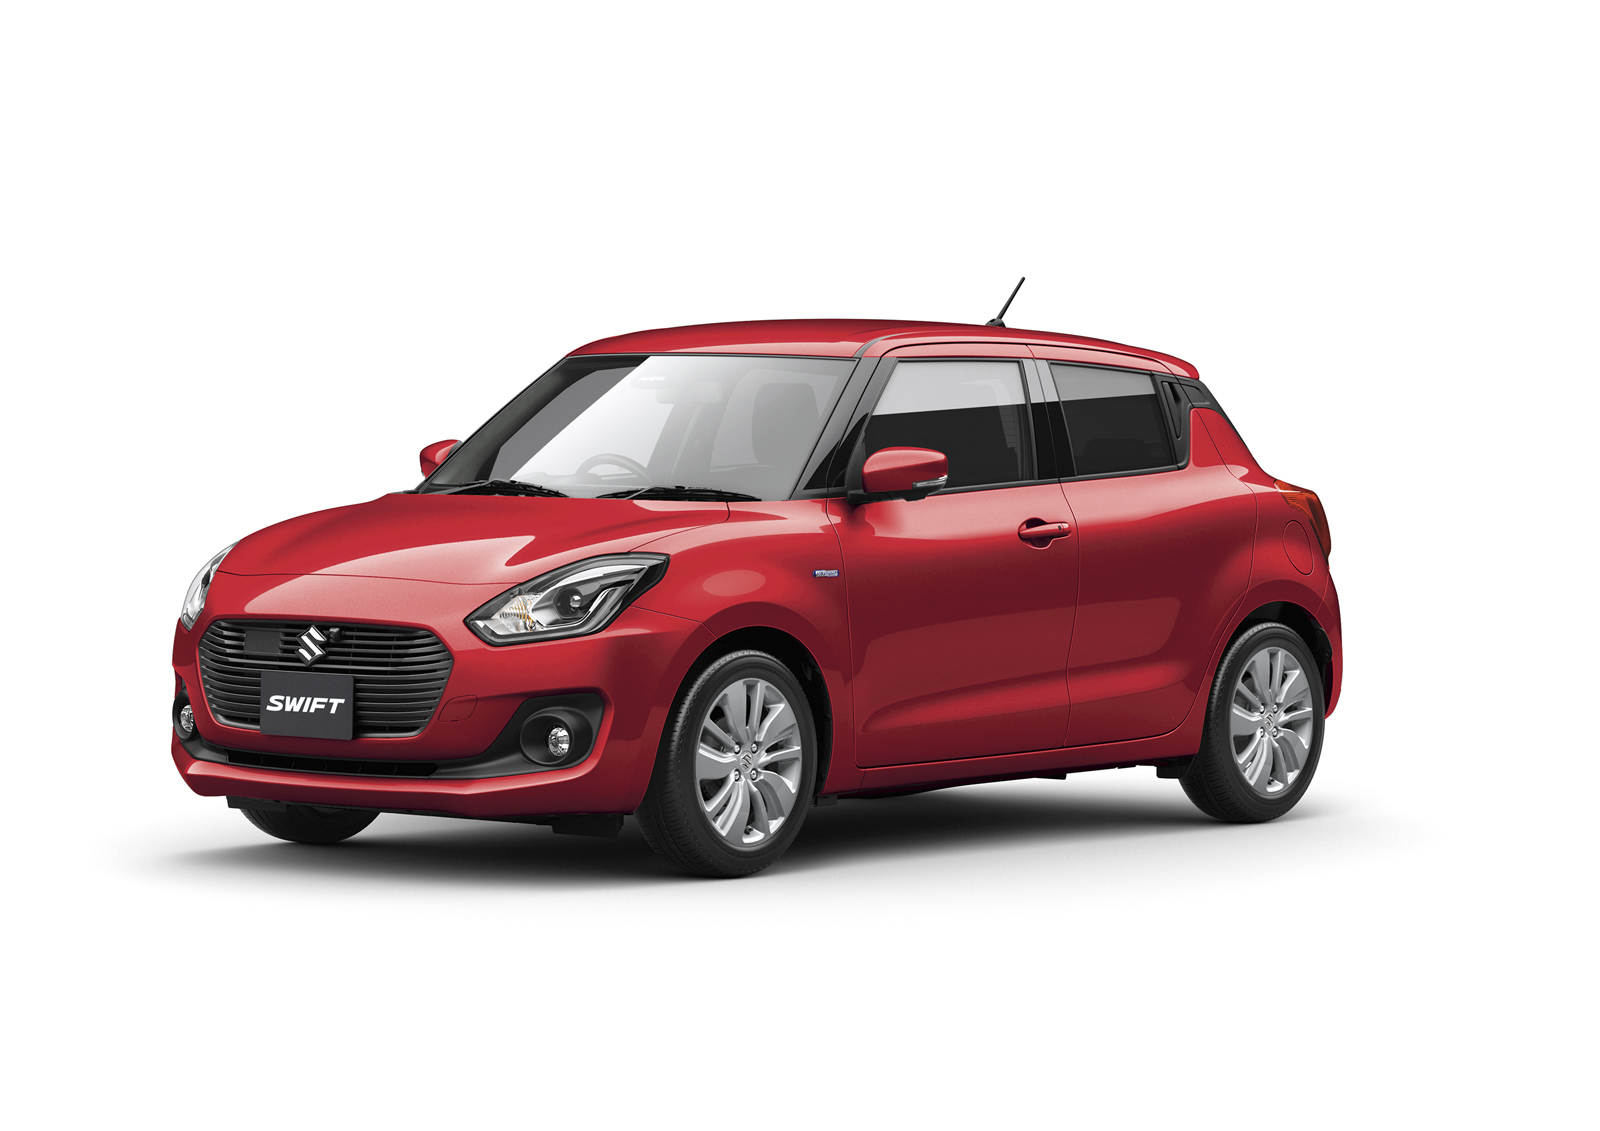 Suzuki Swift 2017 (10)